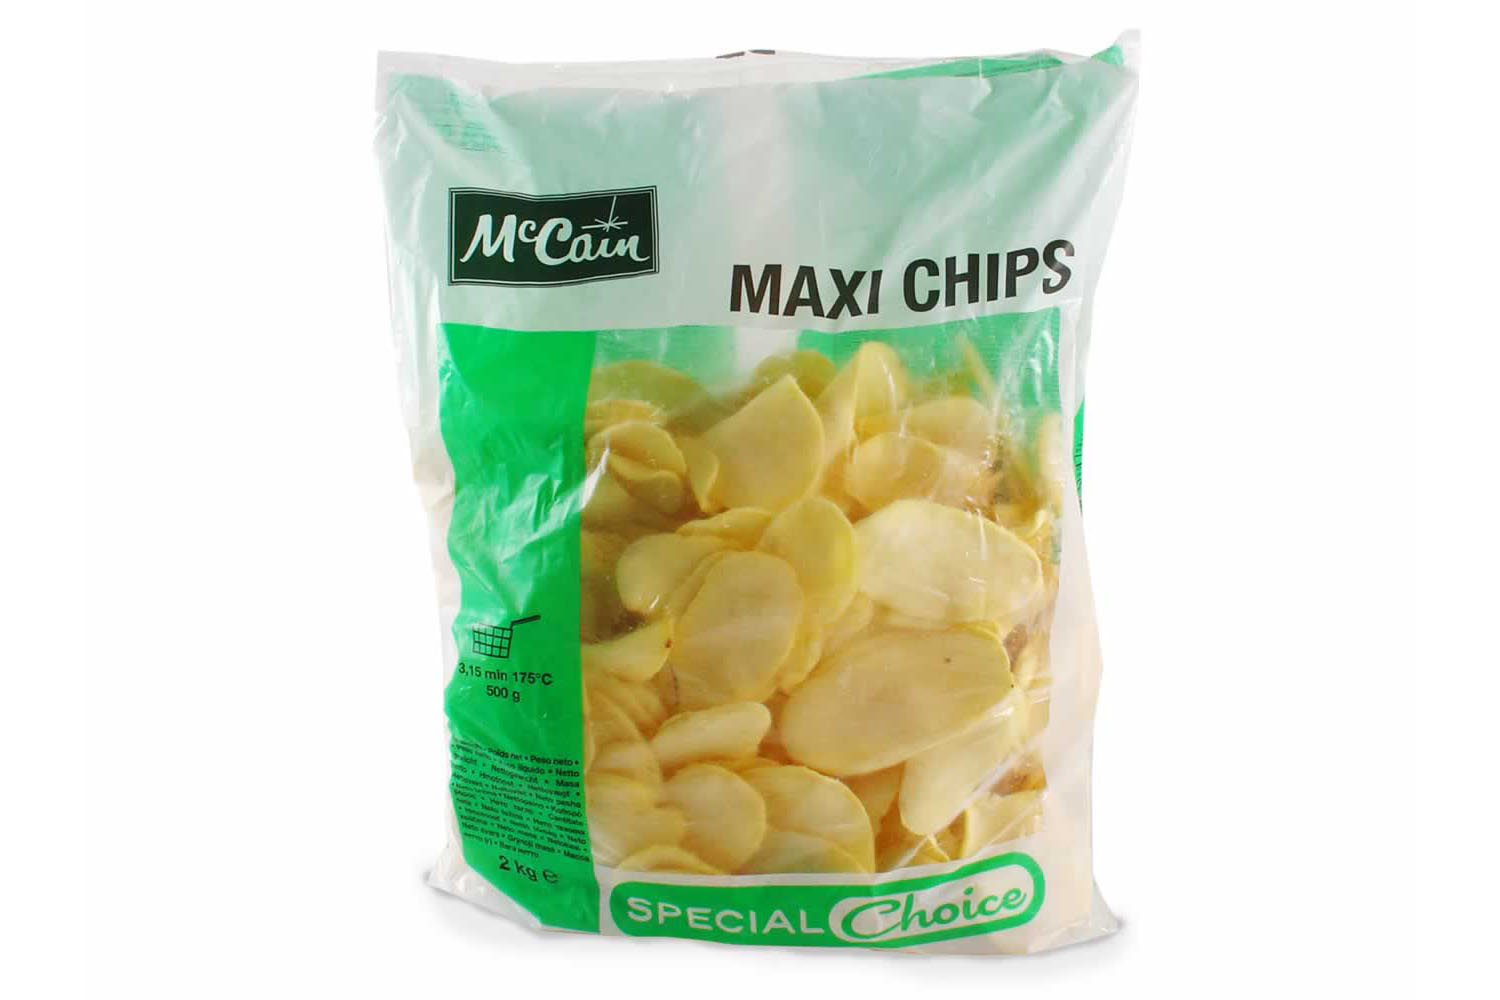 MAXI CHIPS PATATE MC CAIN SURG